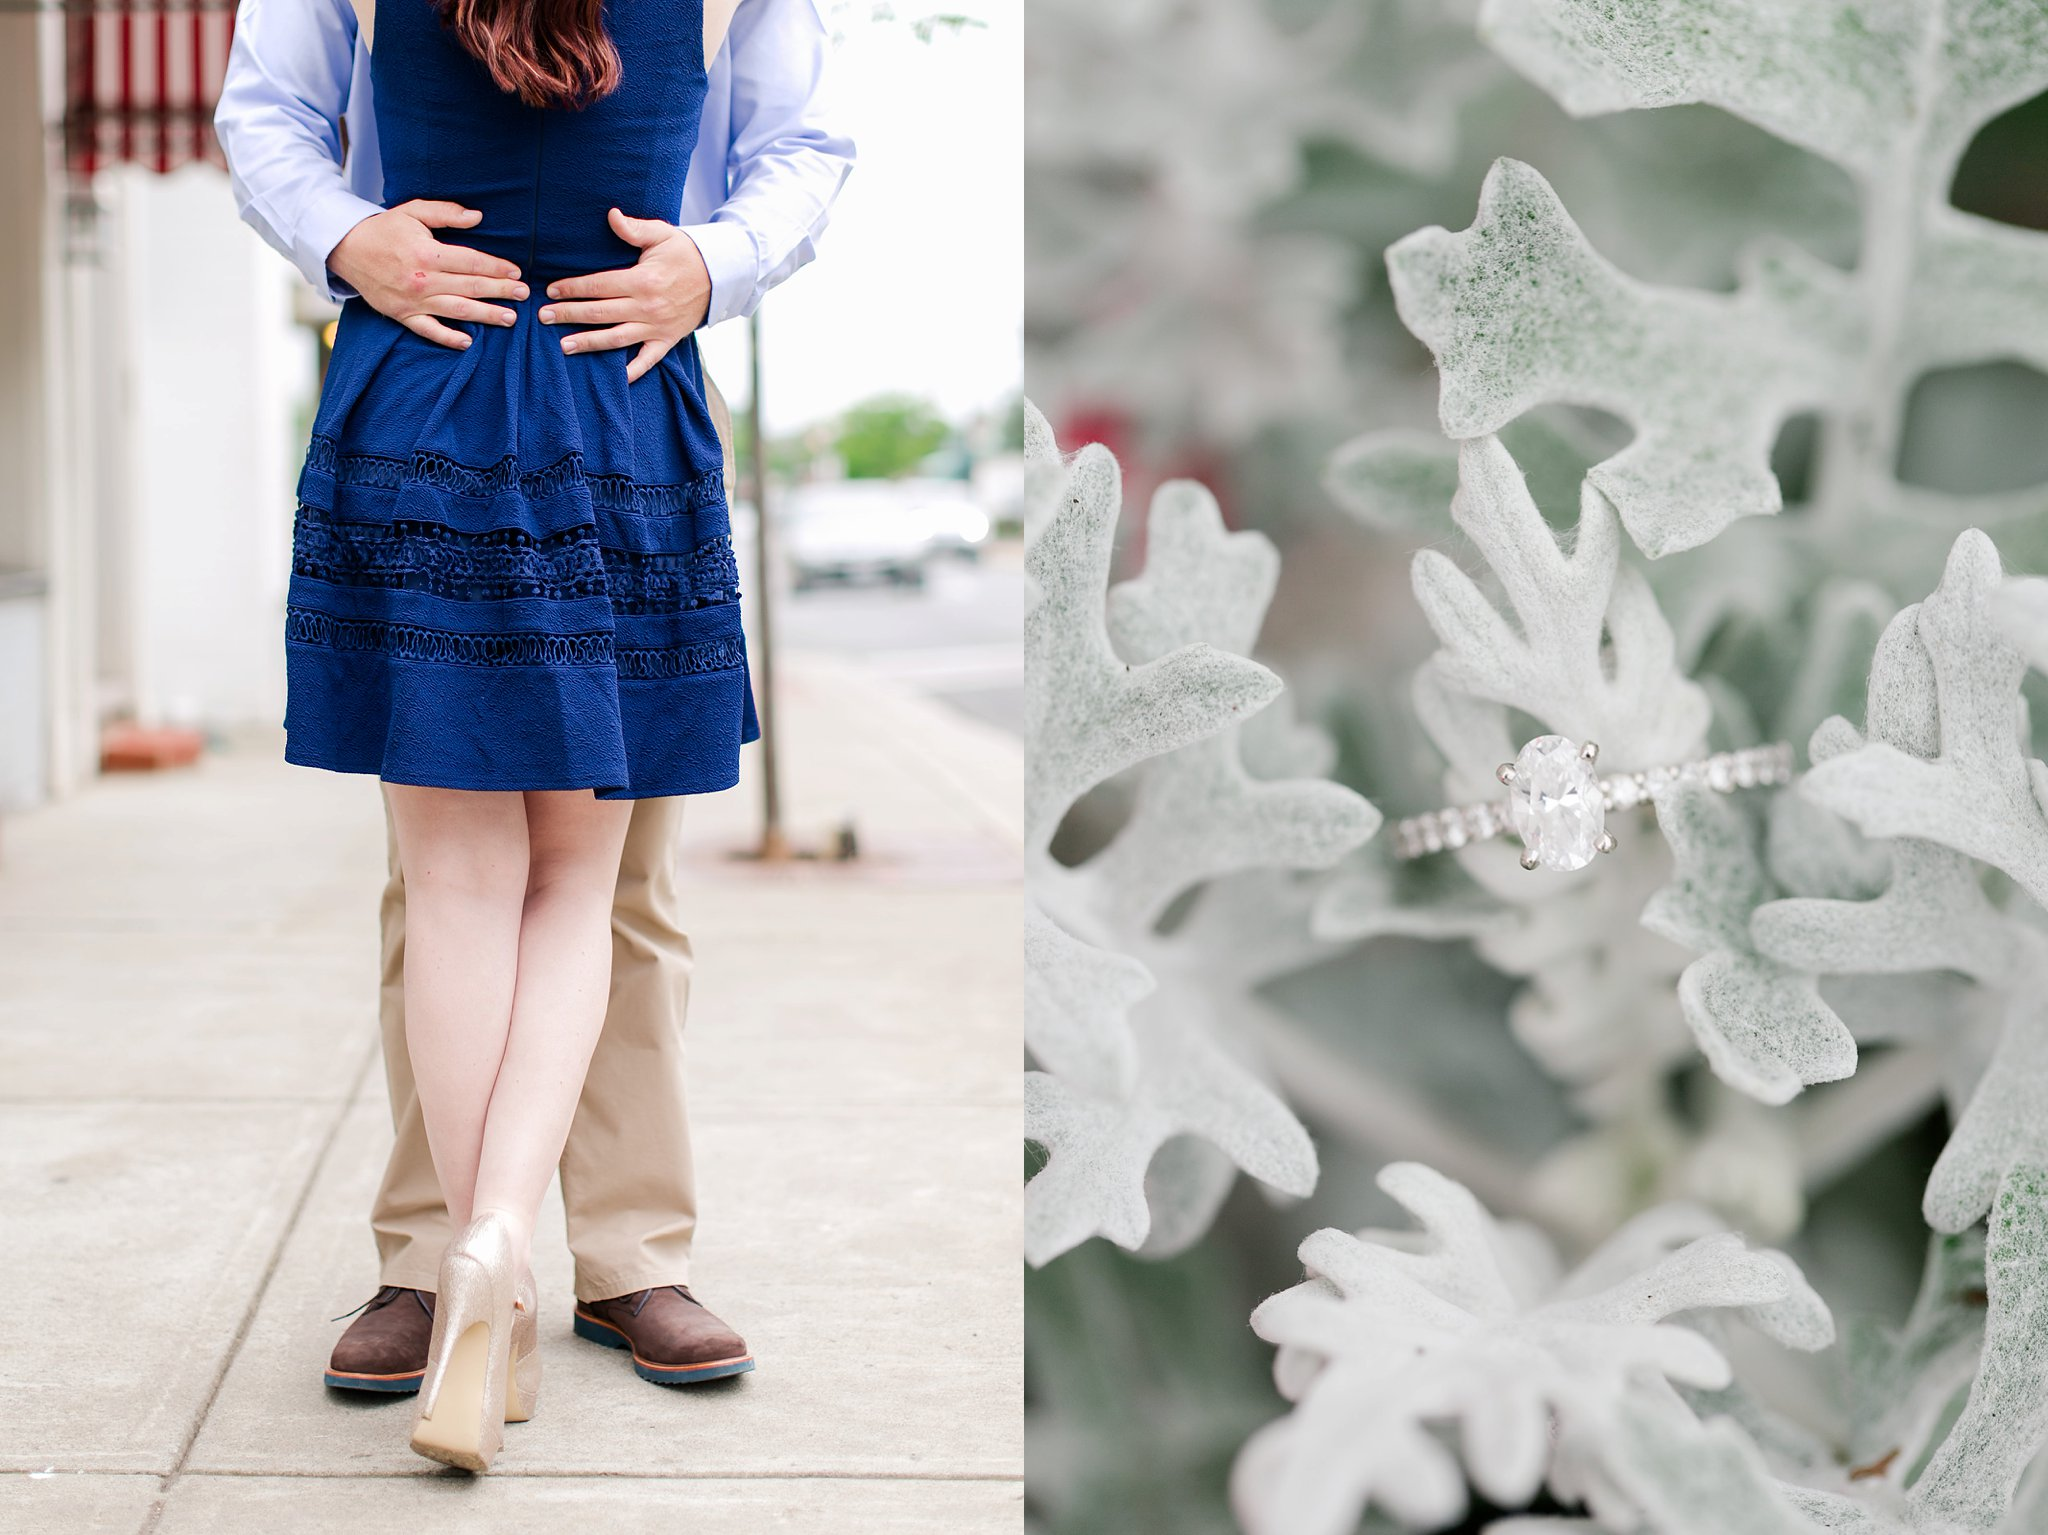 Old Town Manassas Battlefield Engagement Photos Virginia Wedding Photographer Jessica & Jason-105.jpg